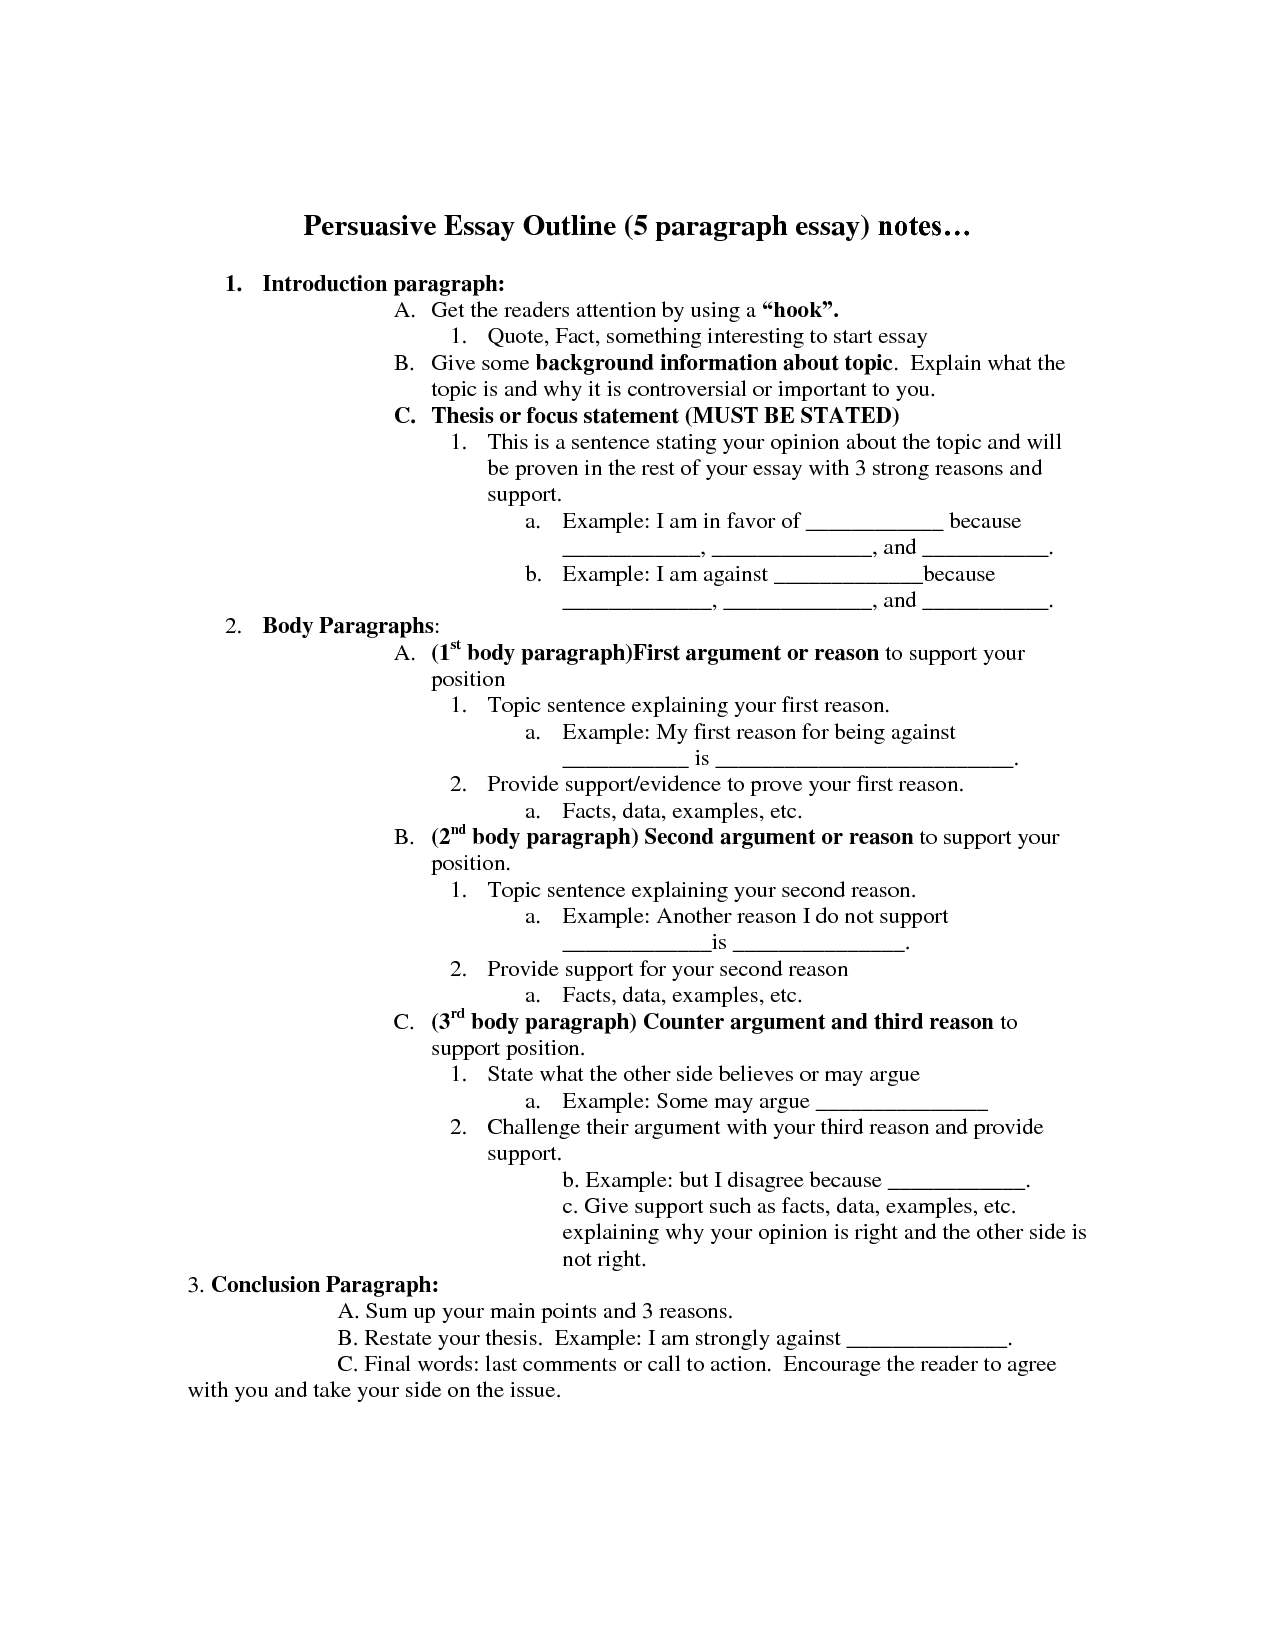 006 Persuasive Essay Outline Unbelievable Format Middle School Good Topics 5th Grade Pdf Full